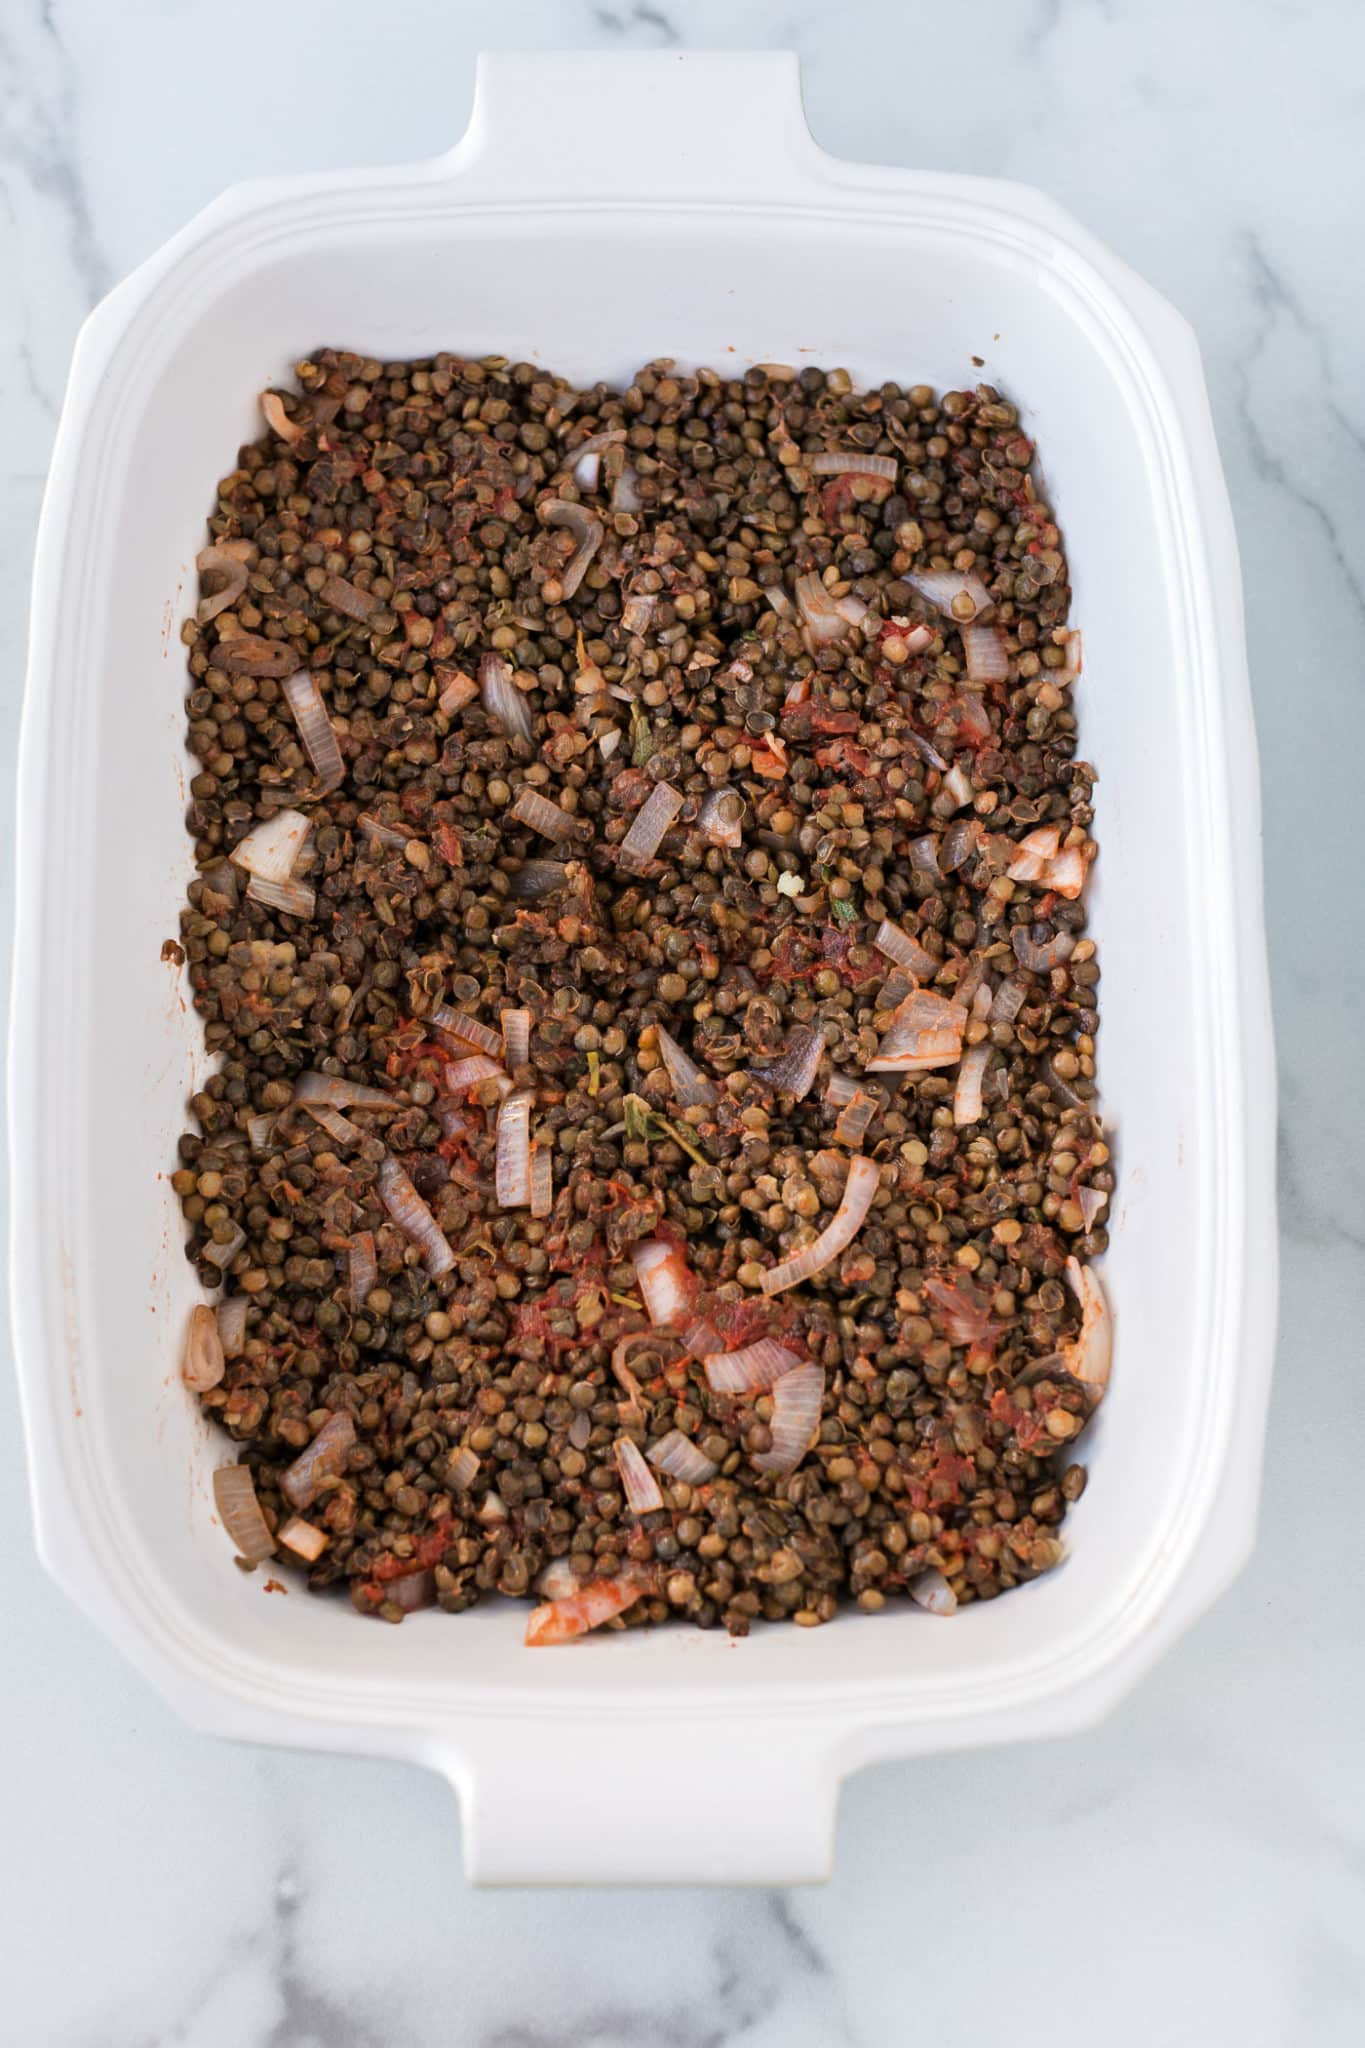 cooked lentils and onions in the bottom of a baking dish